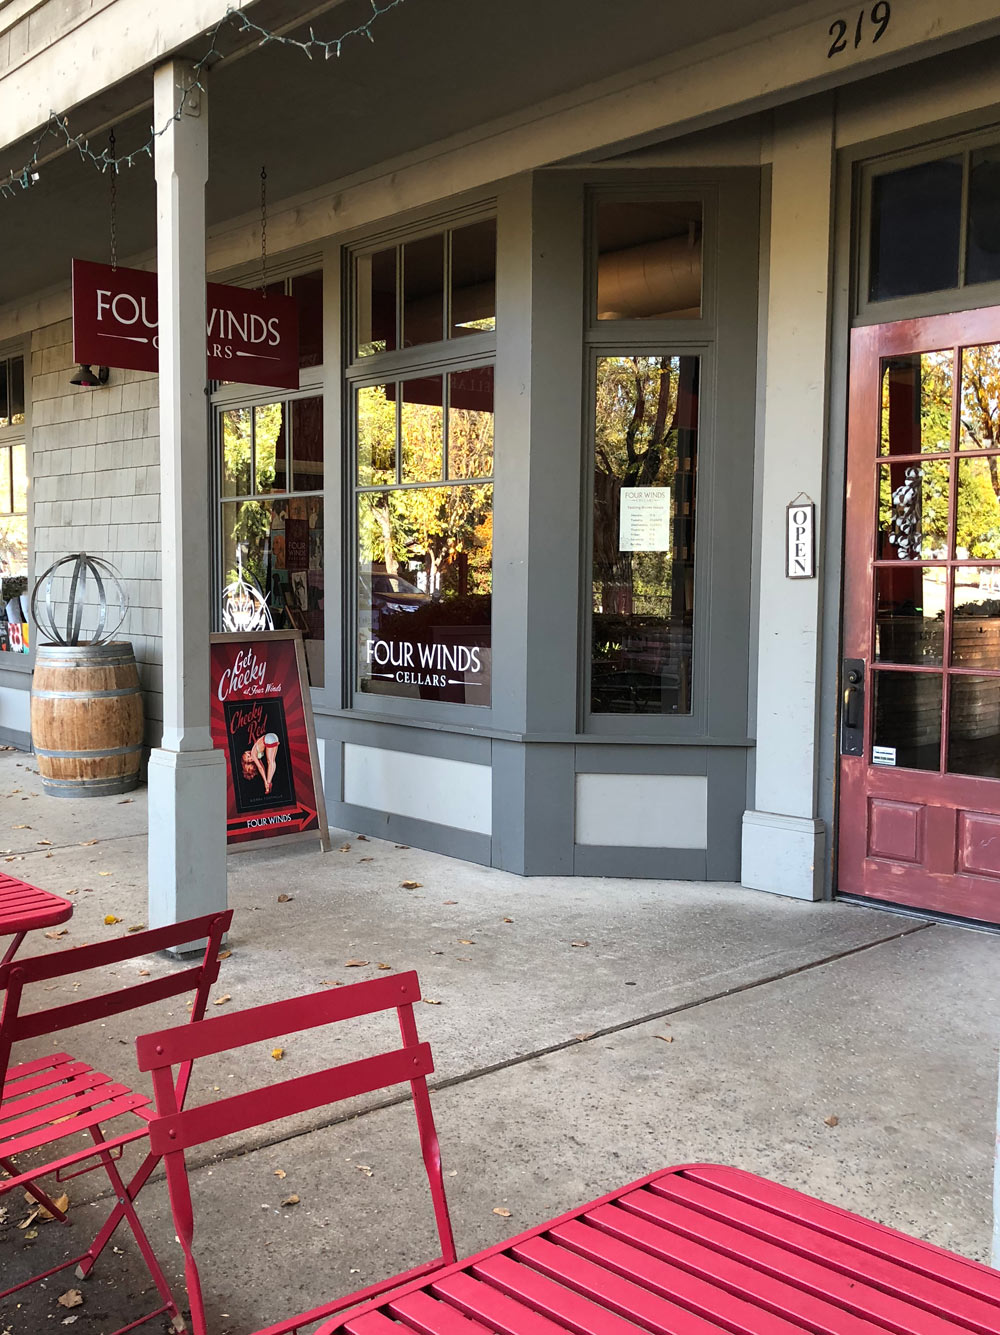 Four Winds Cellars Tasting Room